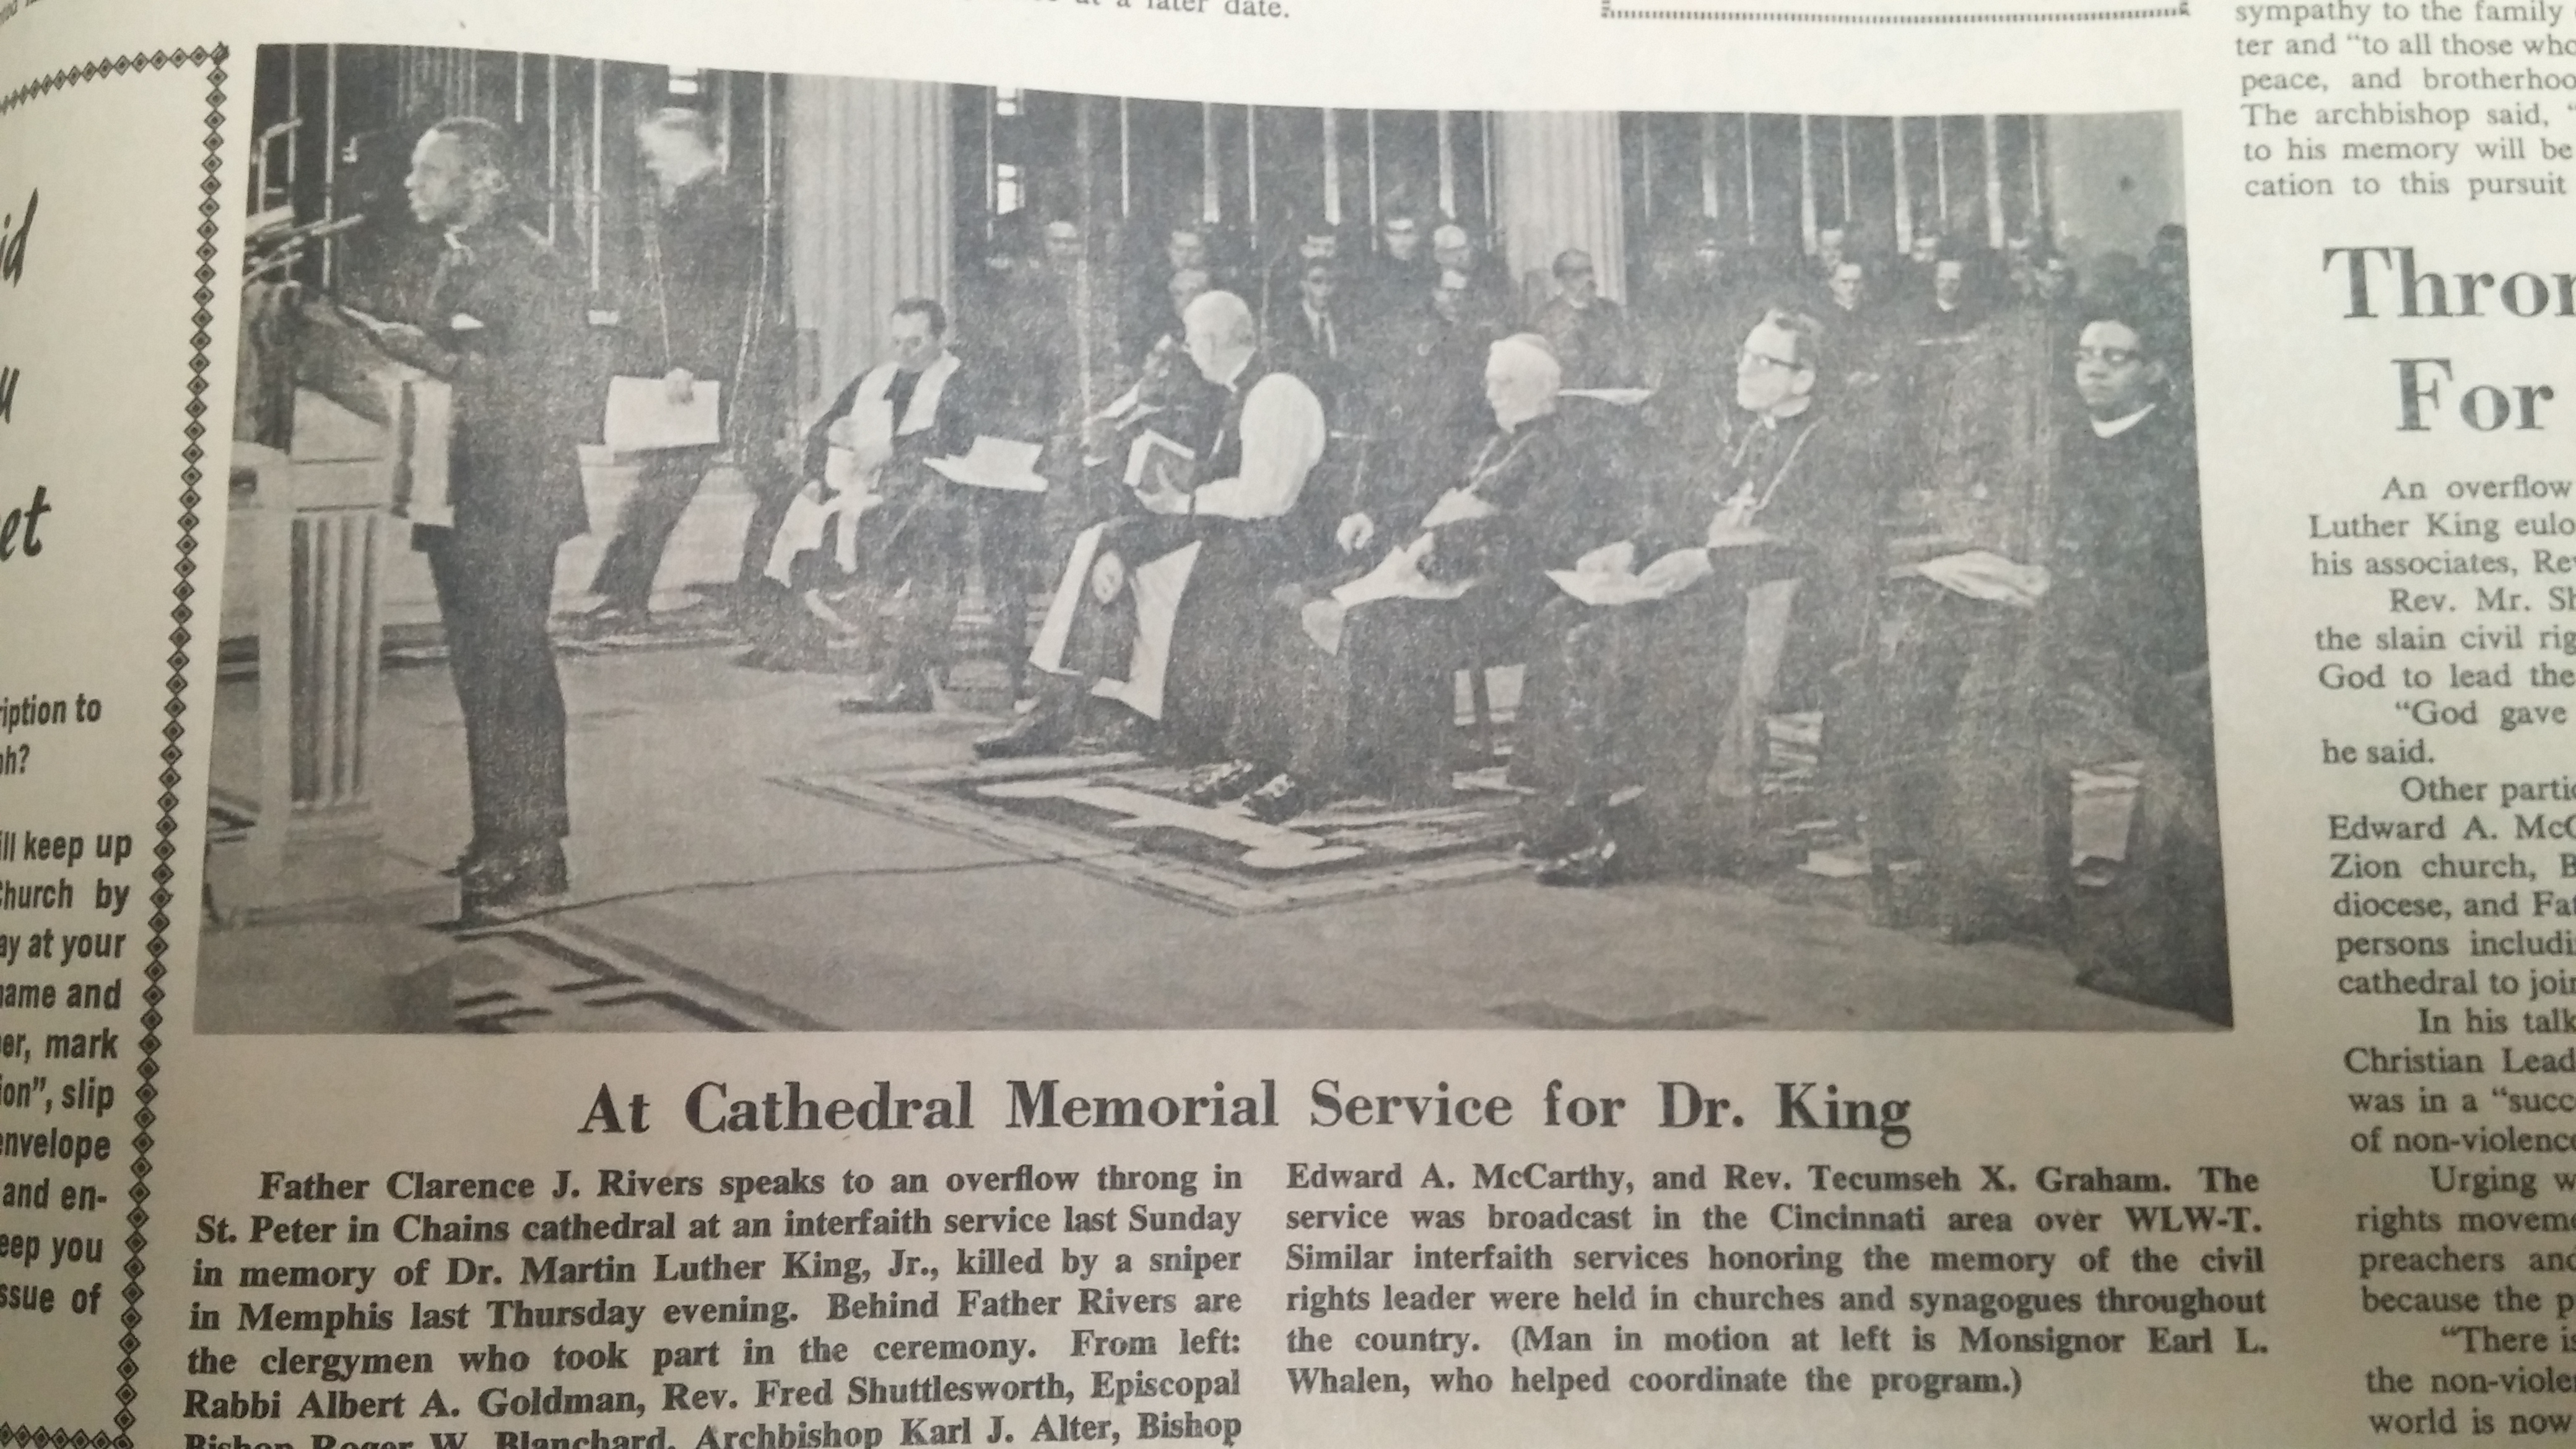 From The Catholic Telegraph April 1968